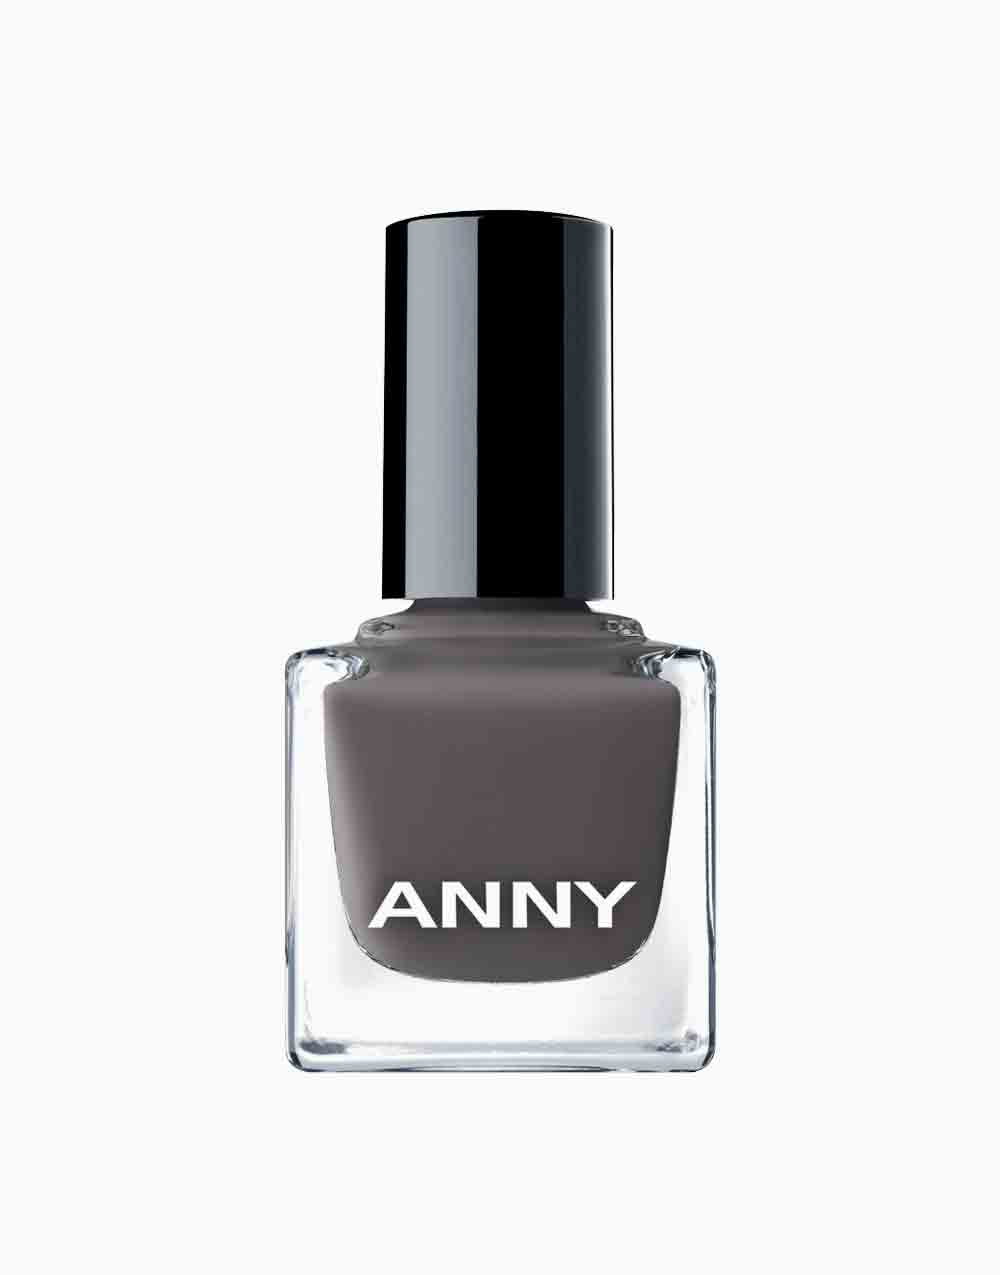 Nail Polish by Anny | ETERNITY